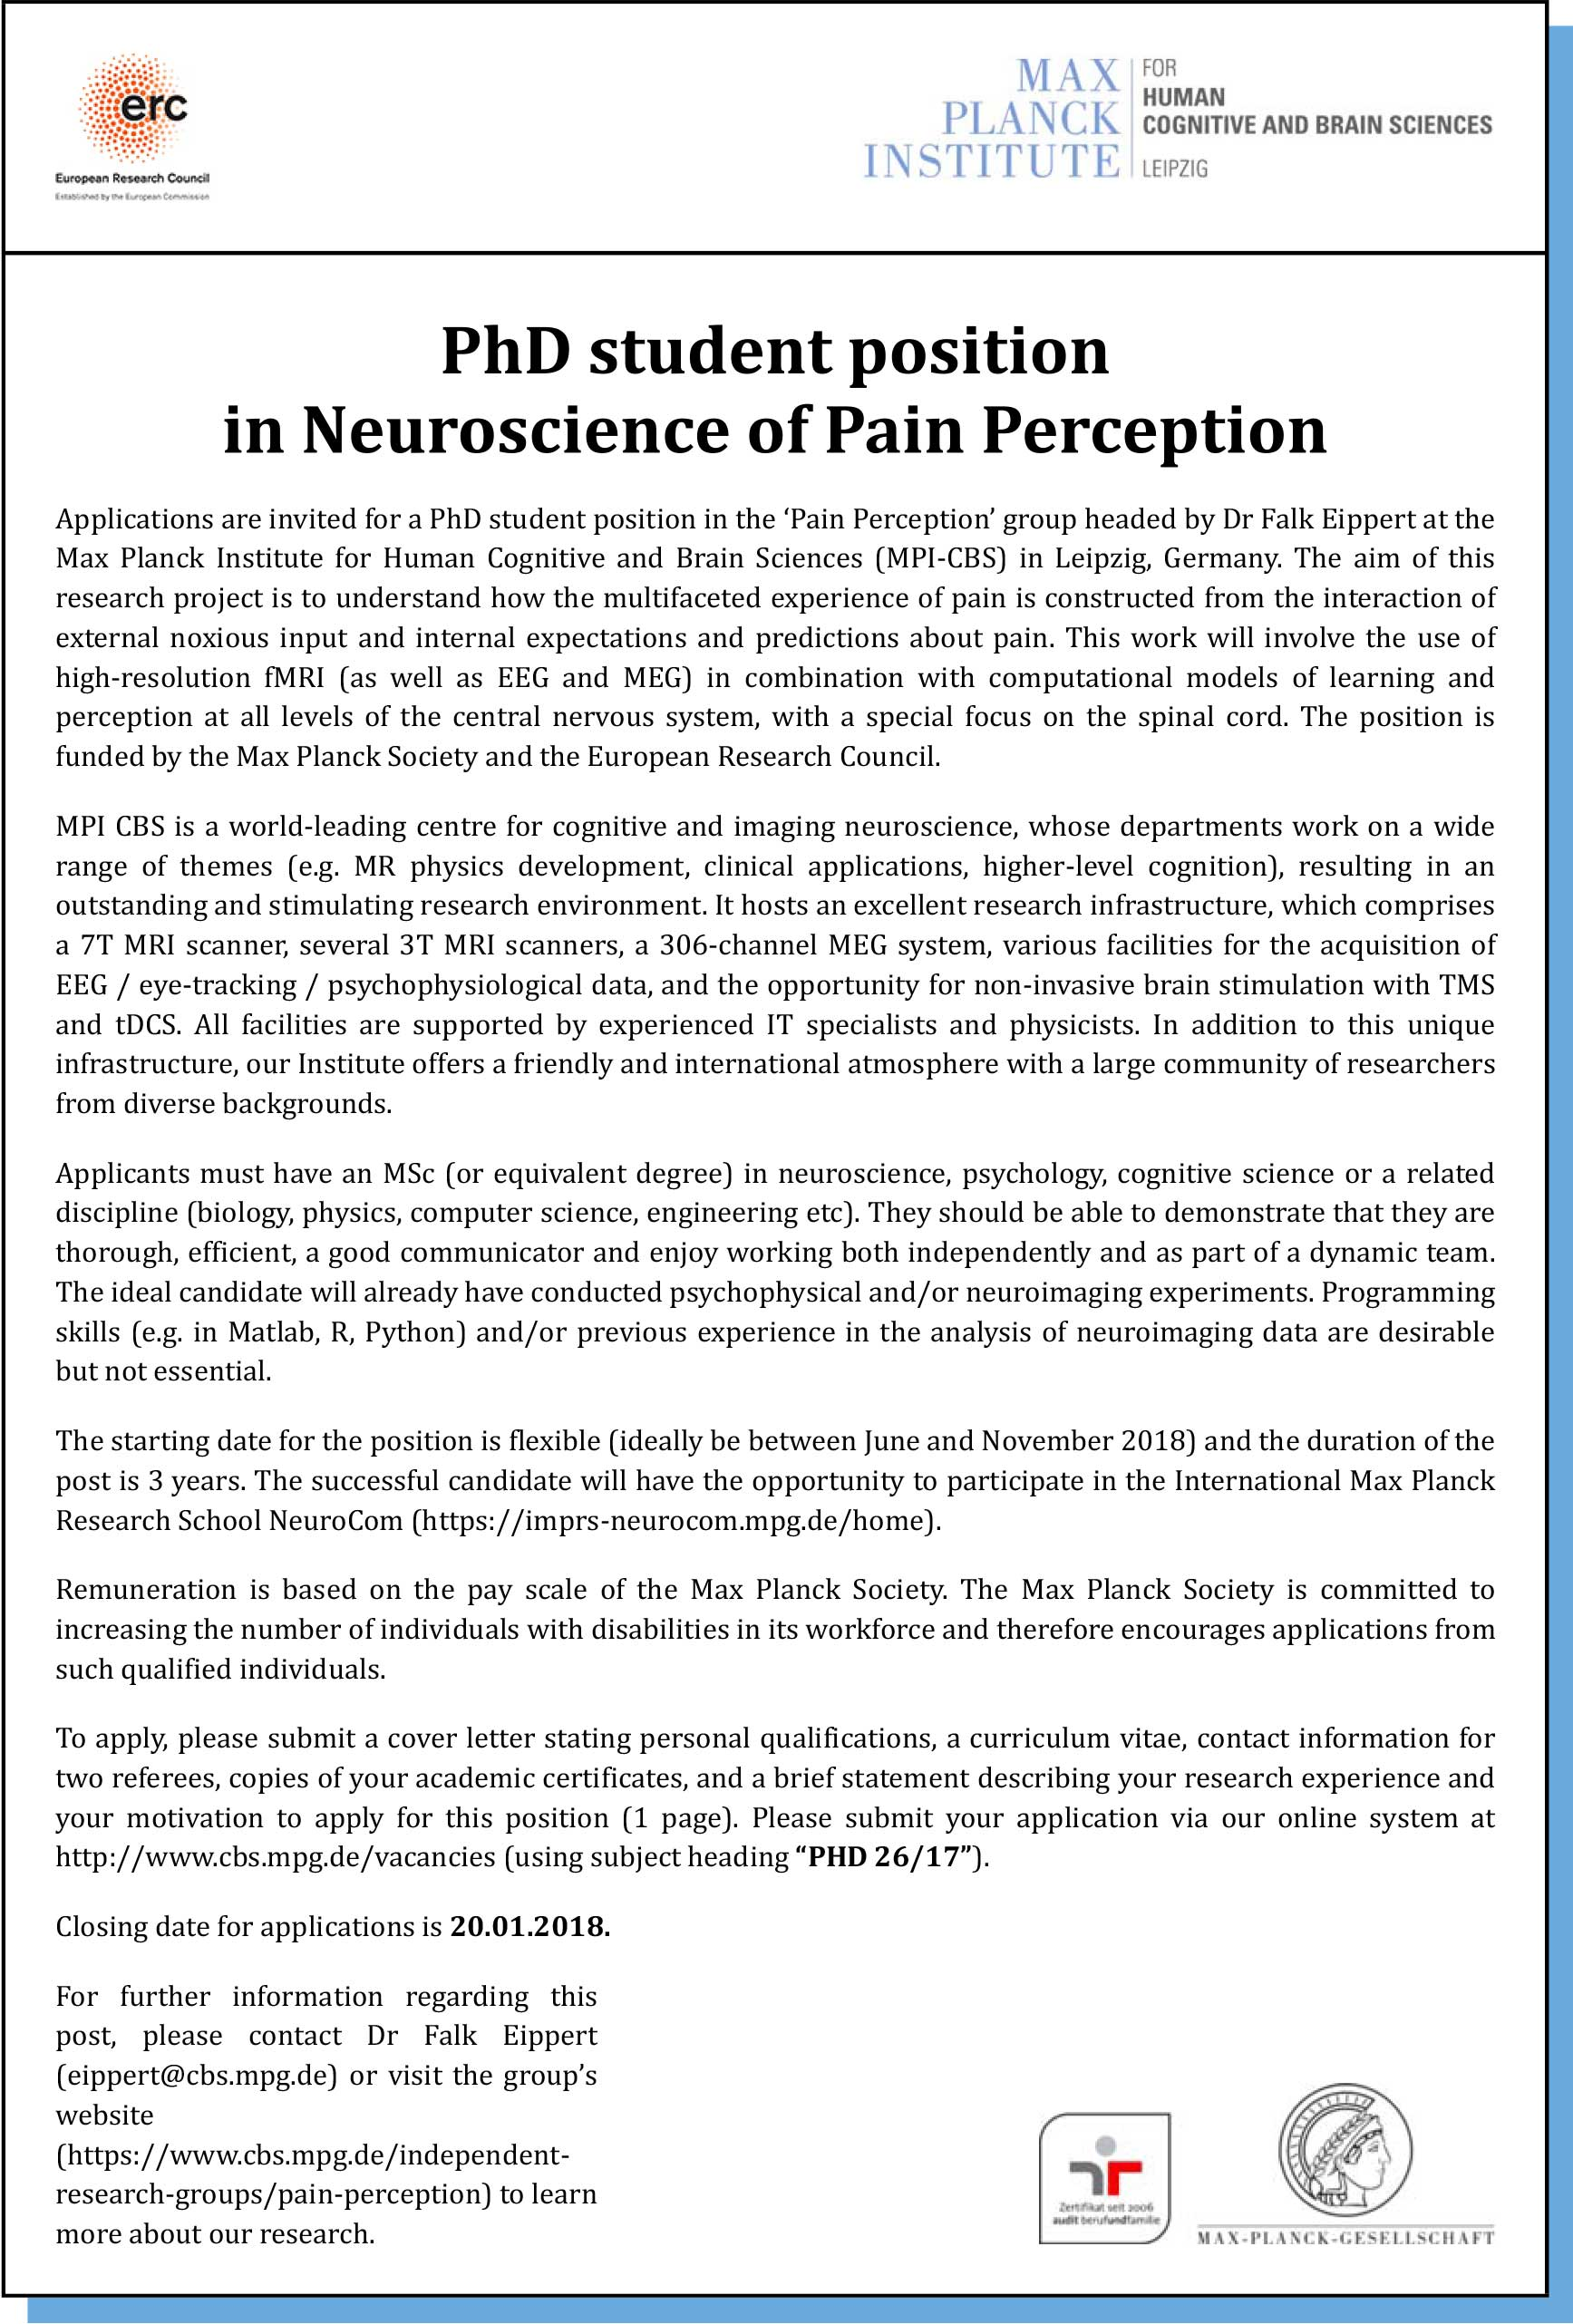 PhD student position in Neuroscience of Pain Perception - Leipzig